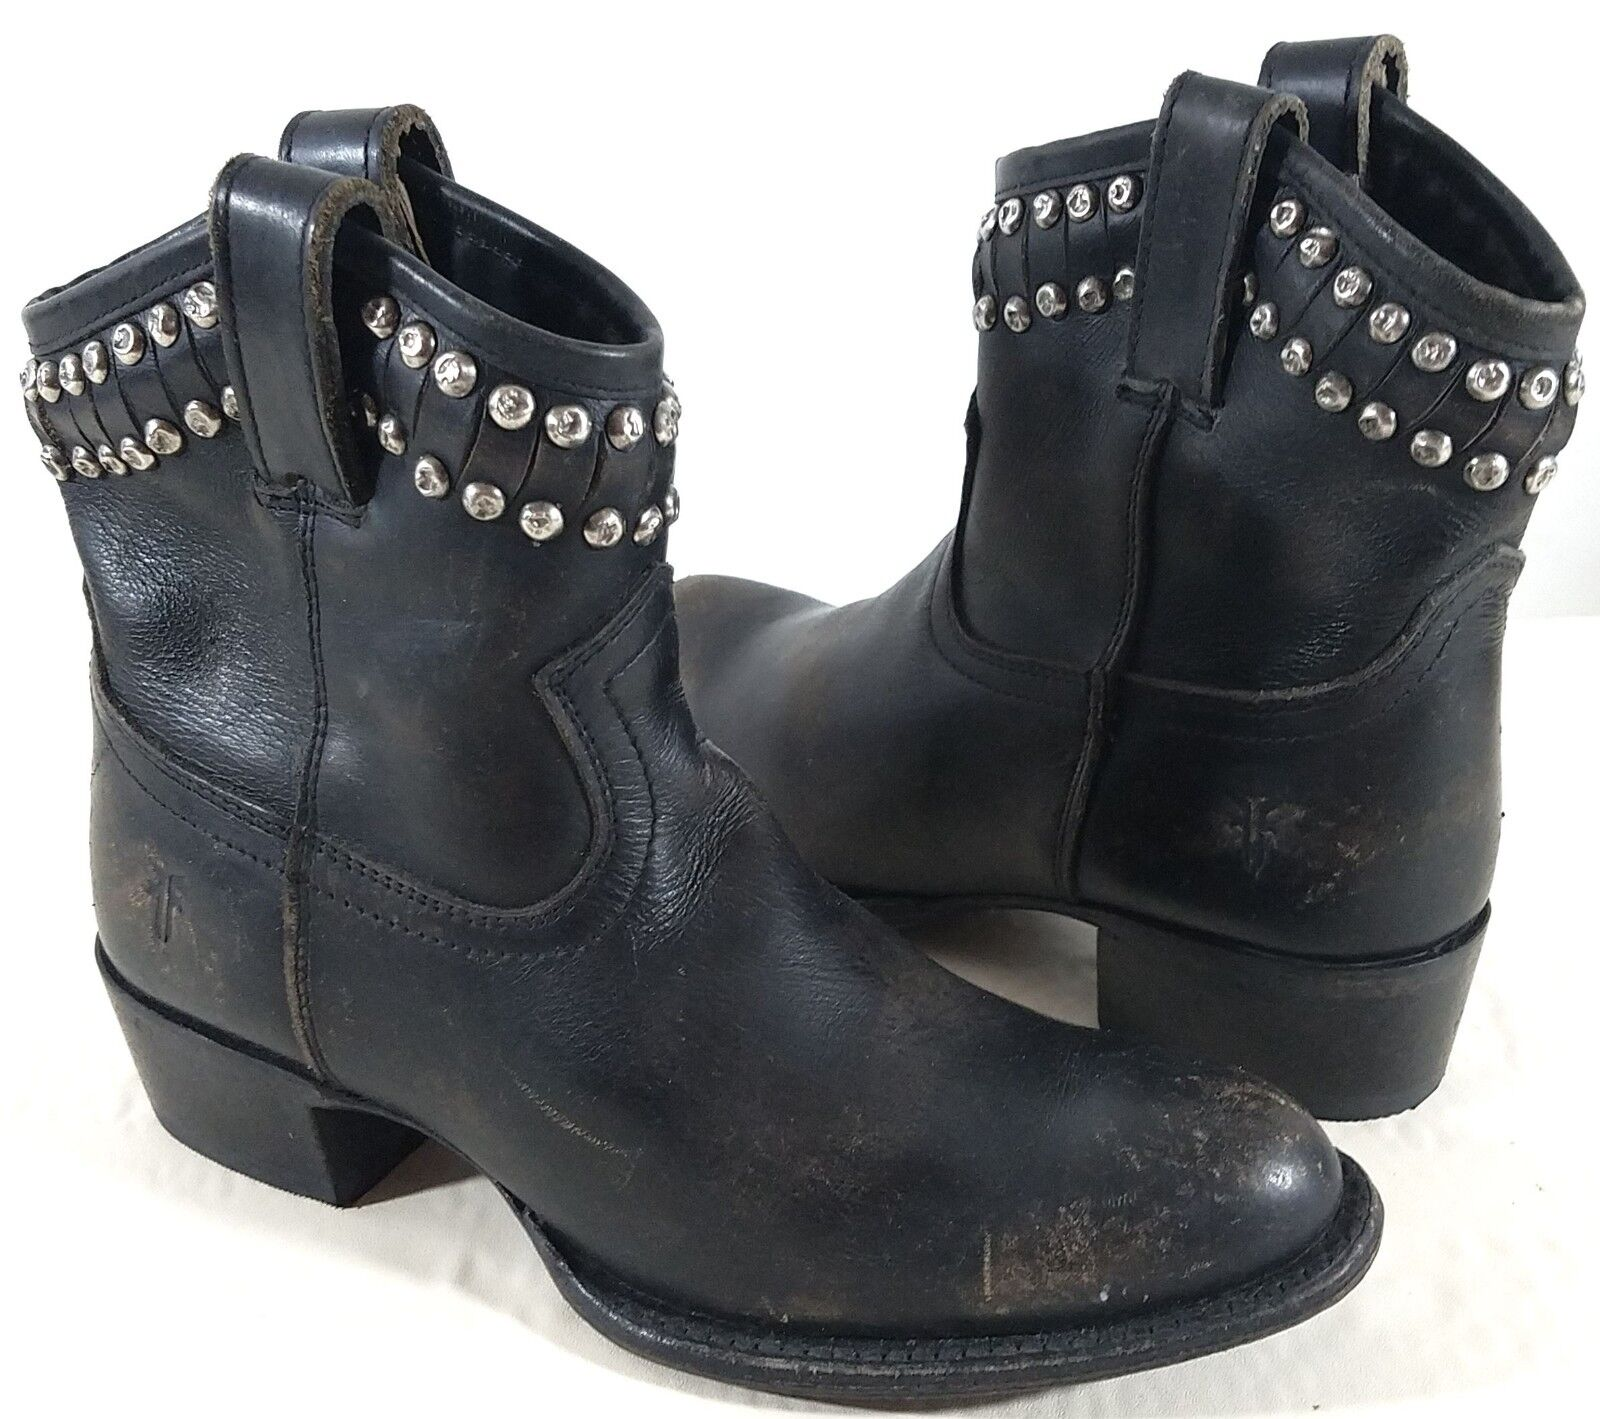 Frye Diana Cut Stud Short Black Booties Size: US 6 Regular (M, B)